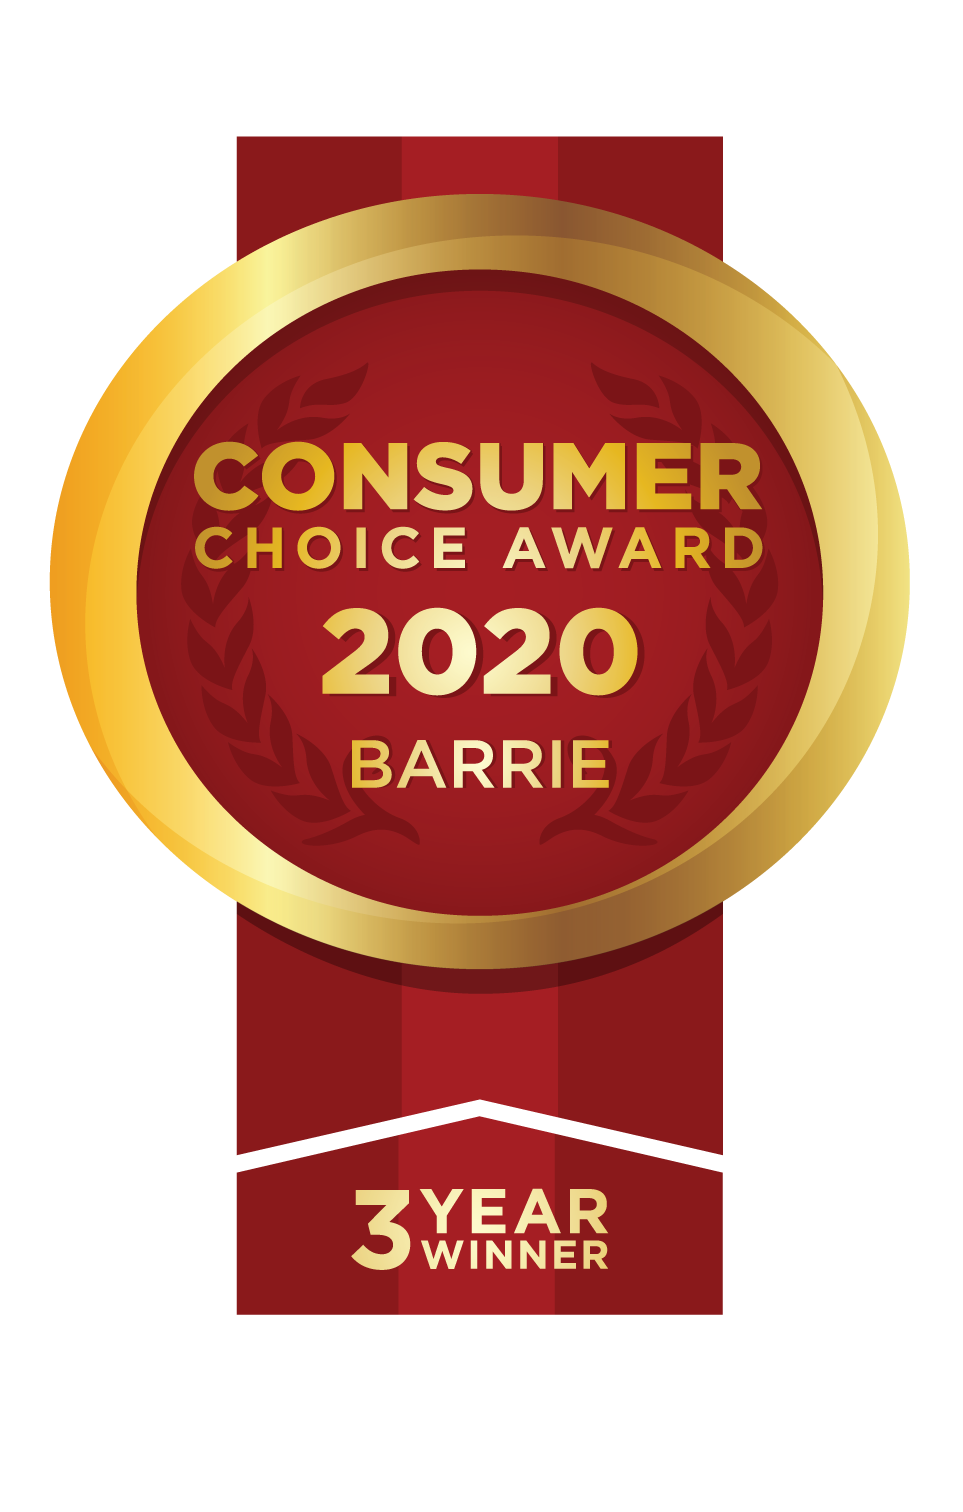 Best Window Company Consumer Choice Award & Barrie Chamber of Commerce